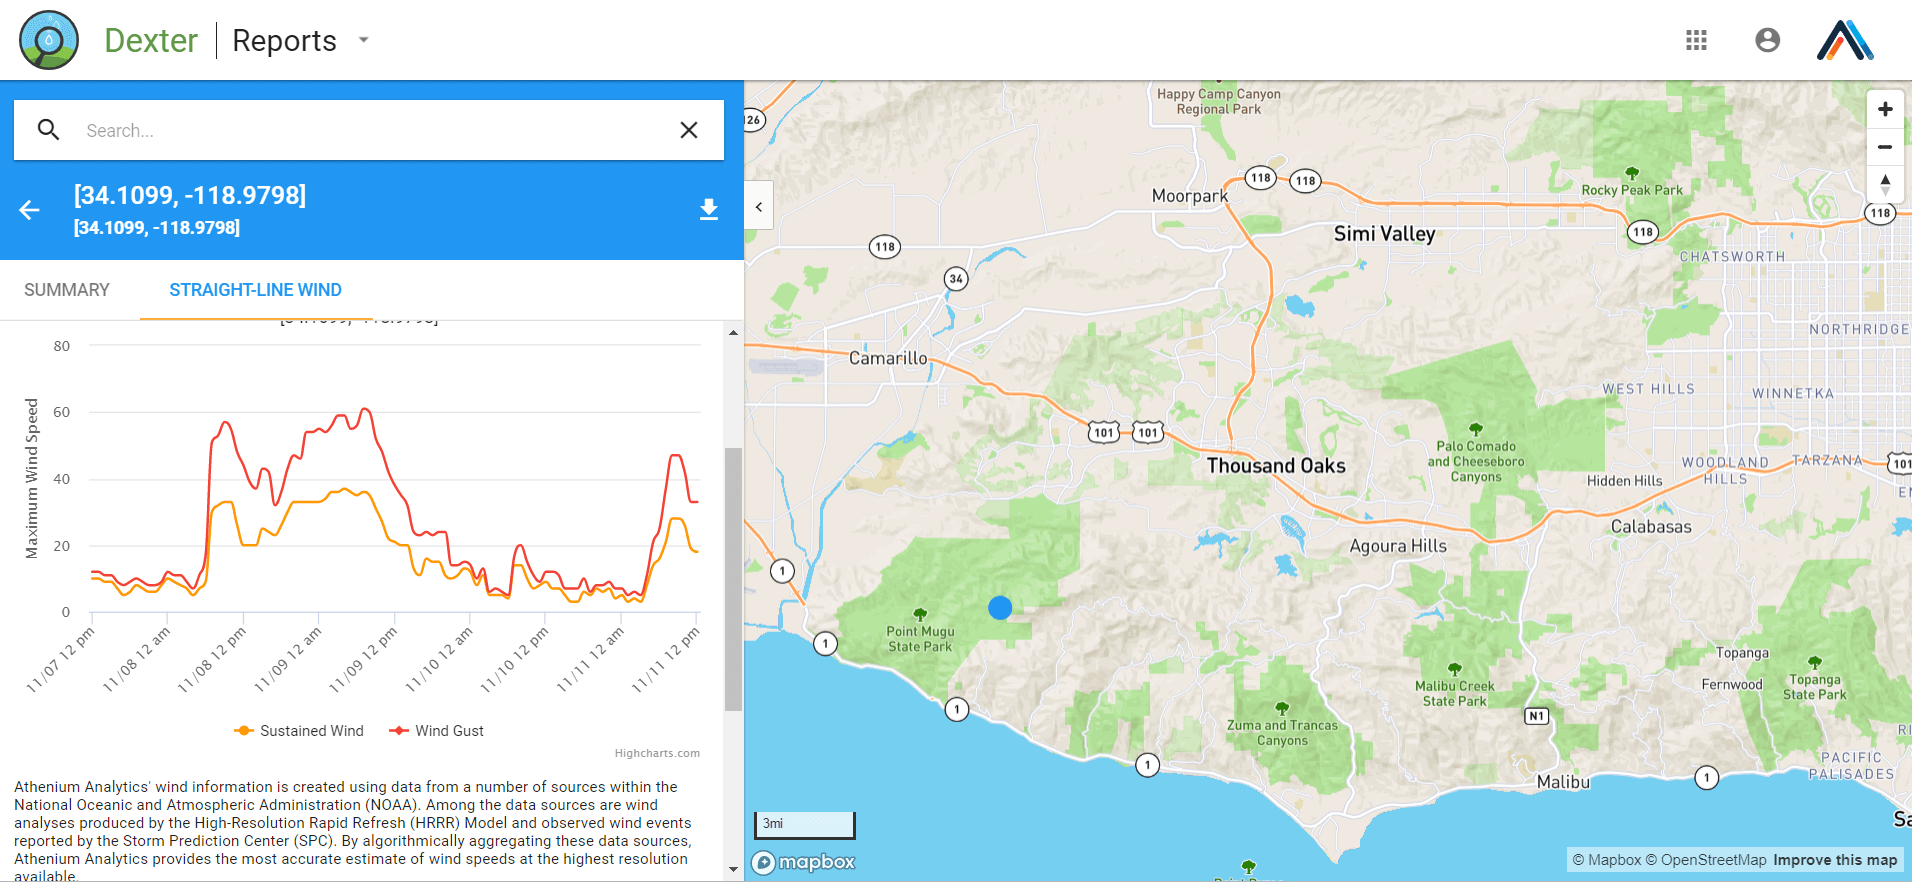 Athenium Analytics - Dexter Reports Wildfire Winds time graph